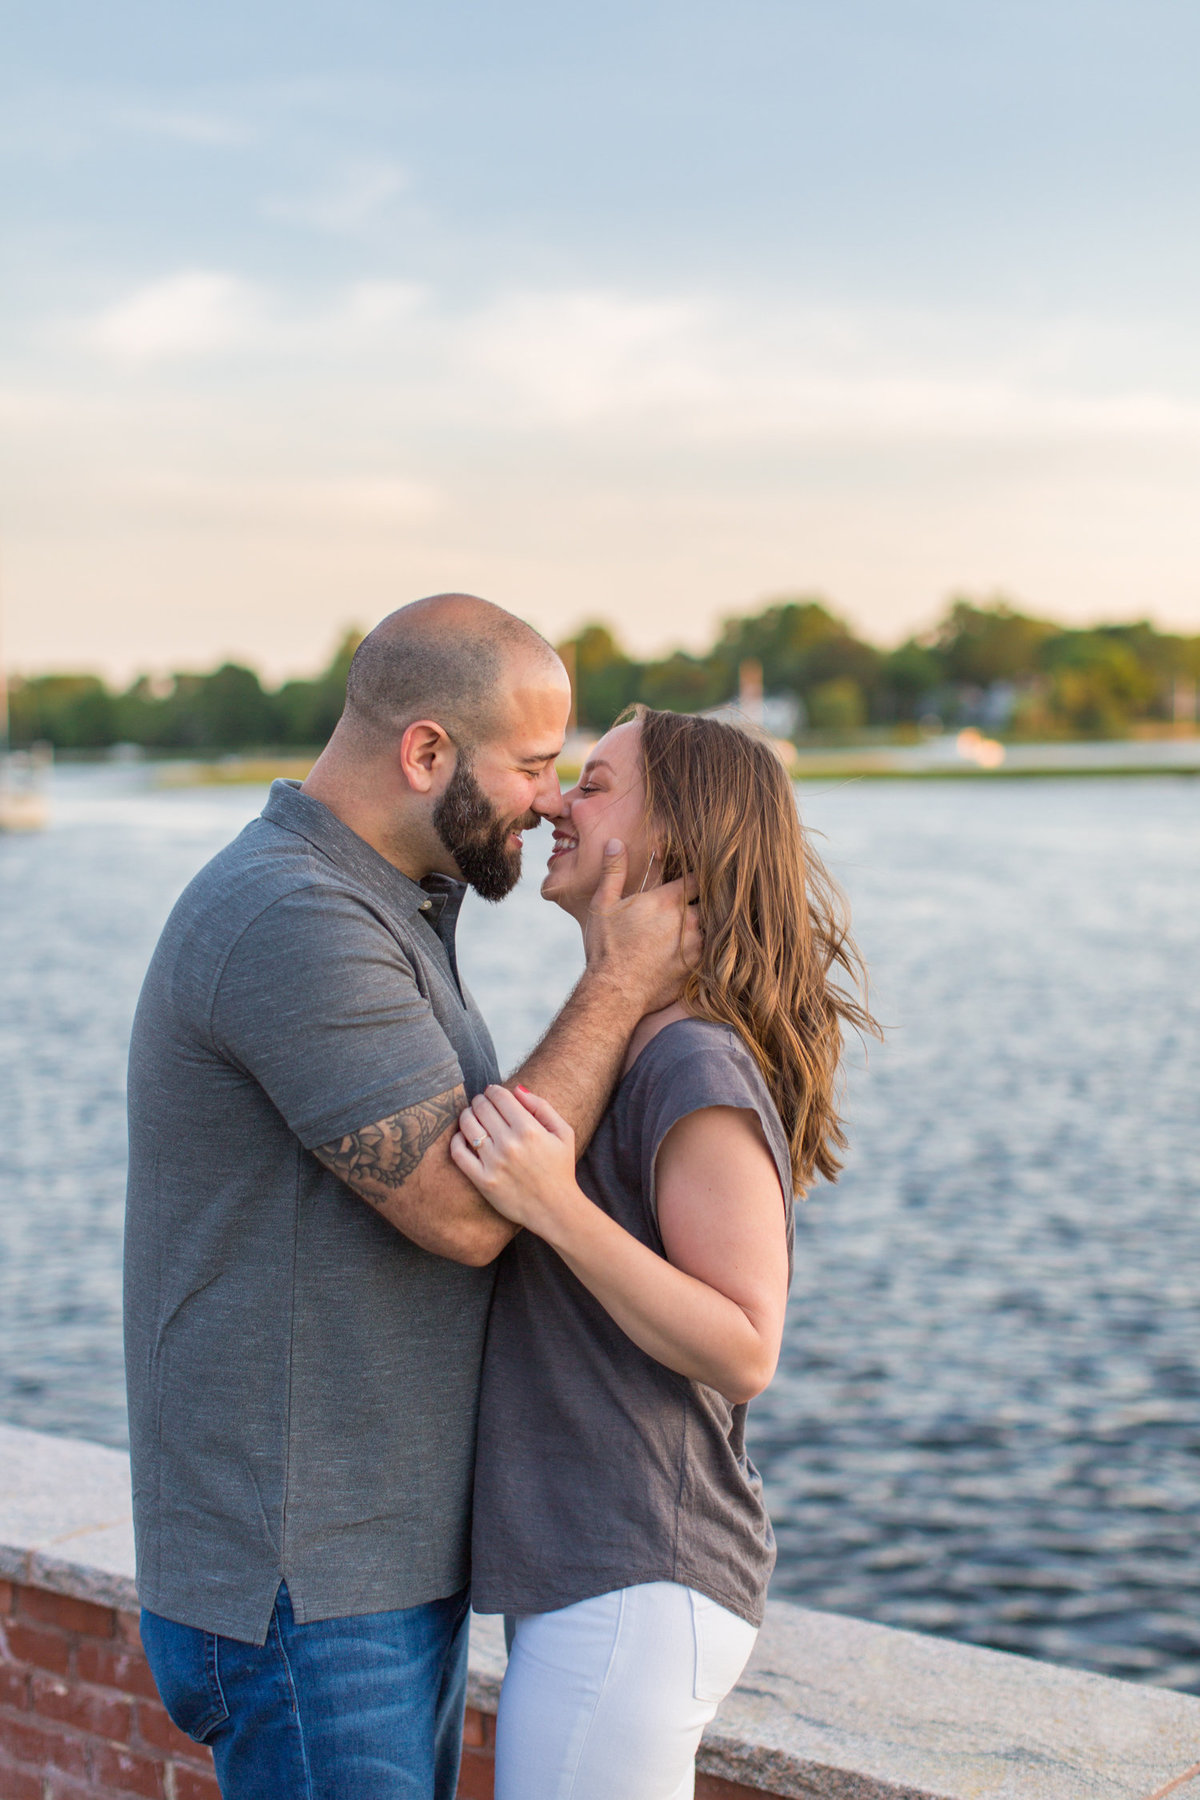 Laura-Klacik-Photography-Engagement-Photos-6-2